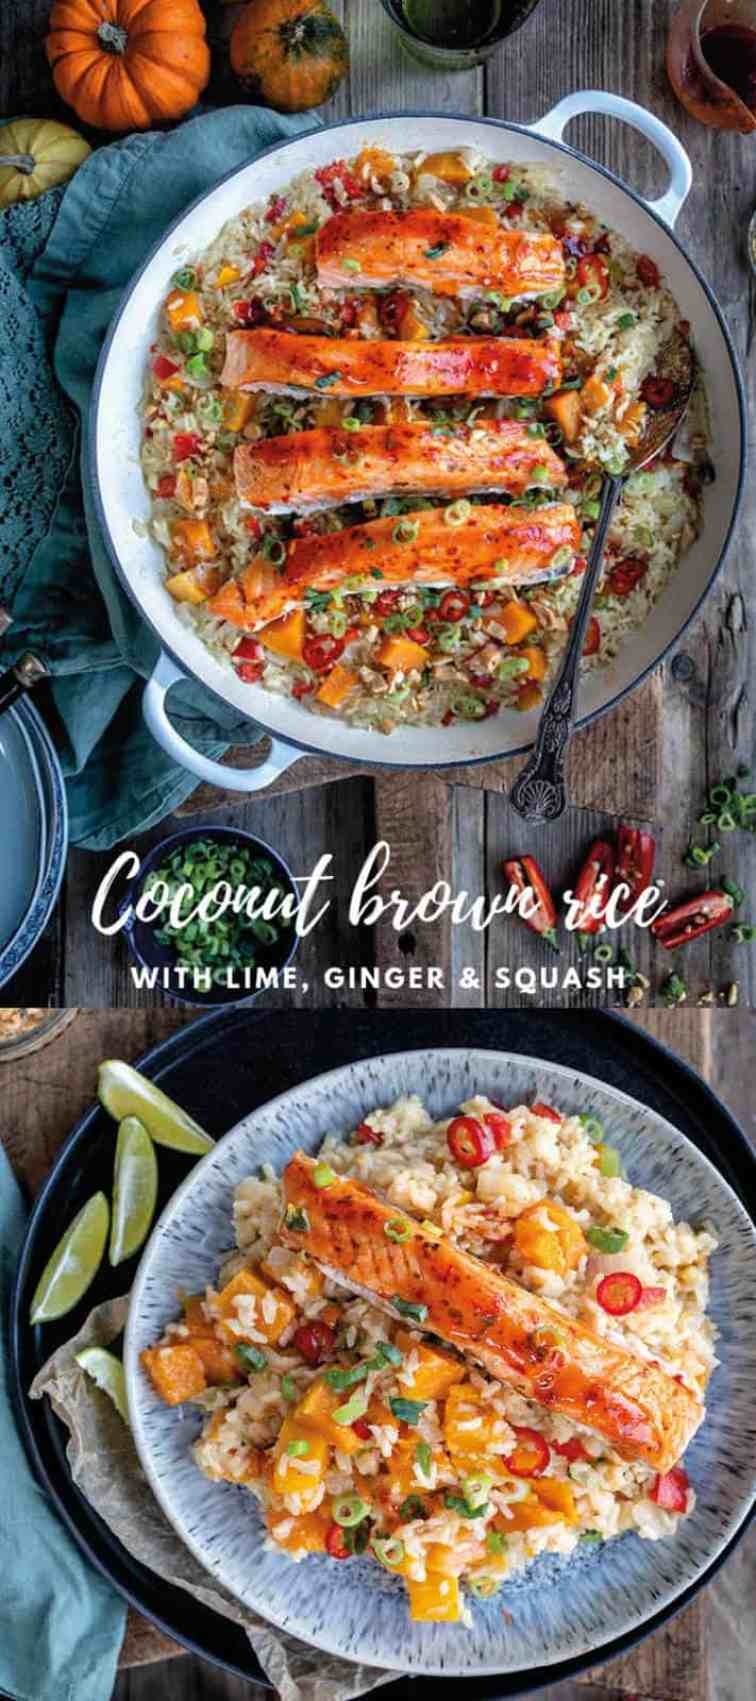 delicious coconut brown rice with ginger, lime and squash is the perfect pairing for The Saucy Fish Co. Salmon with chilli, lime and ginger dressing